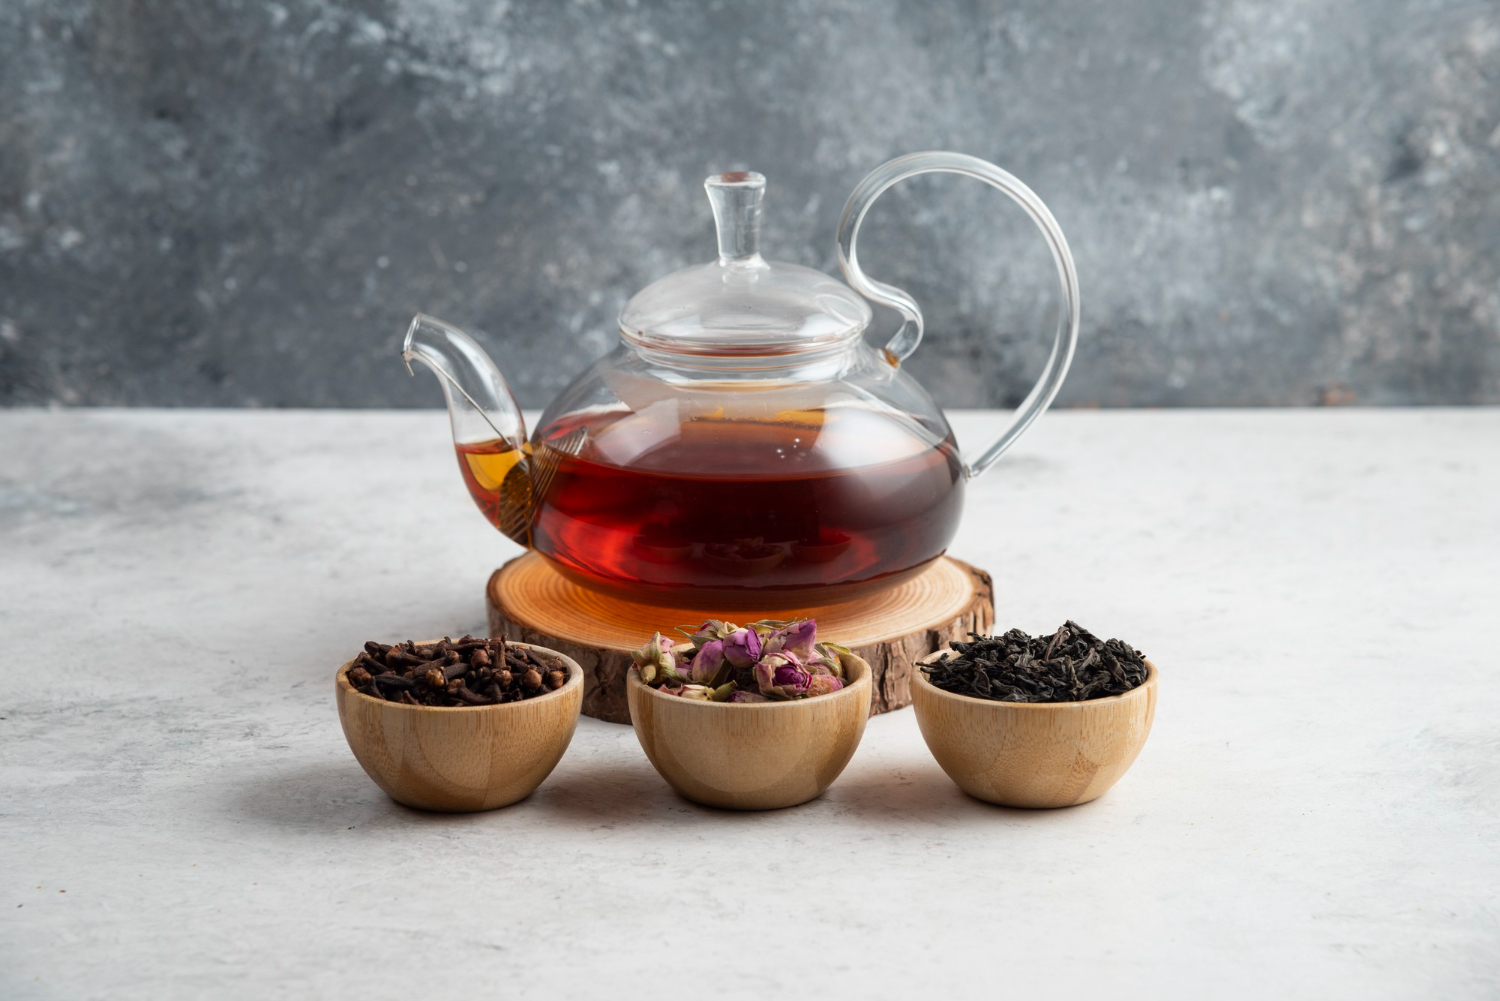 How to Use a Teapot Feature Image